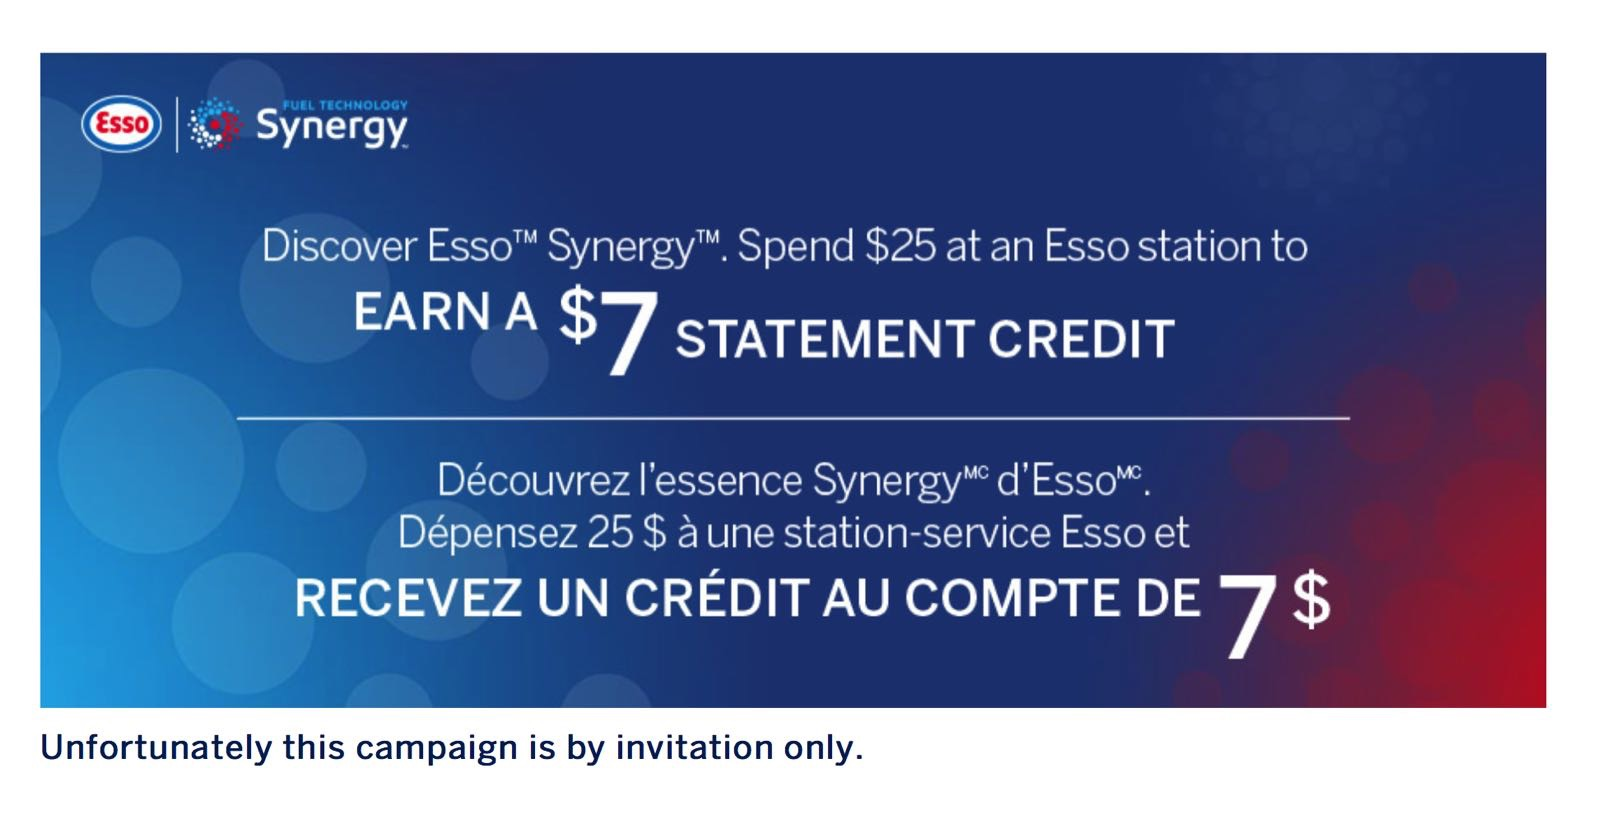 Canadian Rewards AmEx Spend 25 at an Esso station to earn a 7